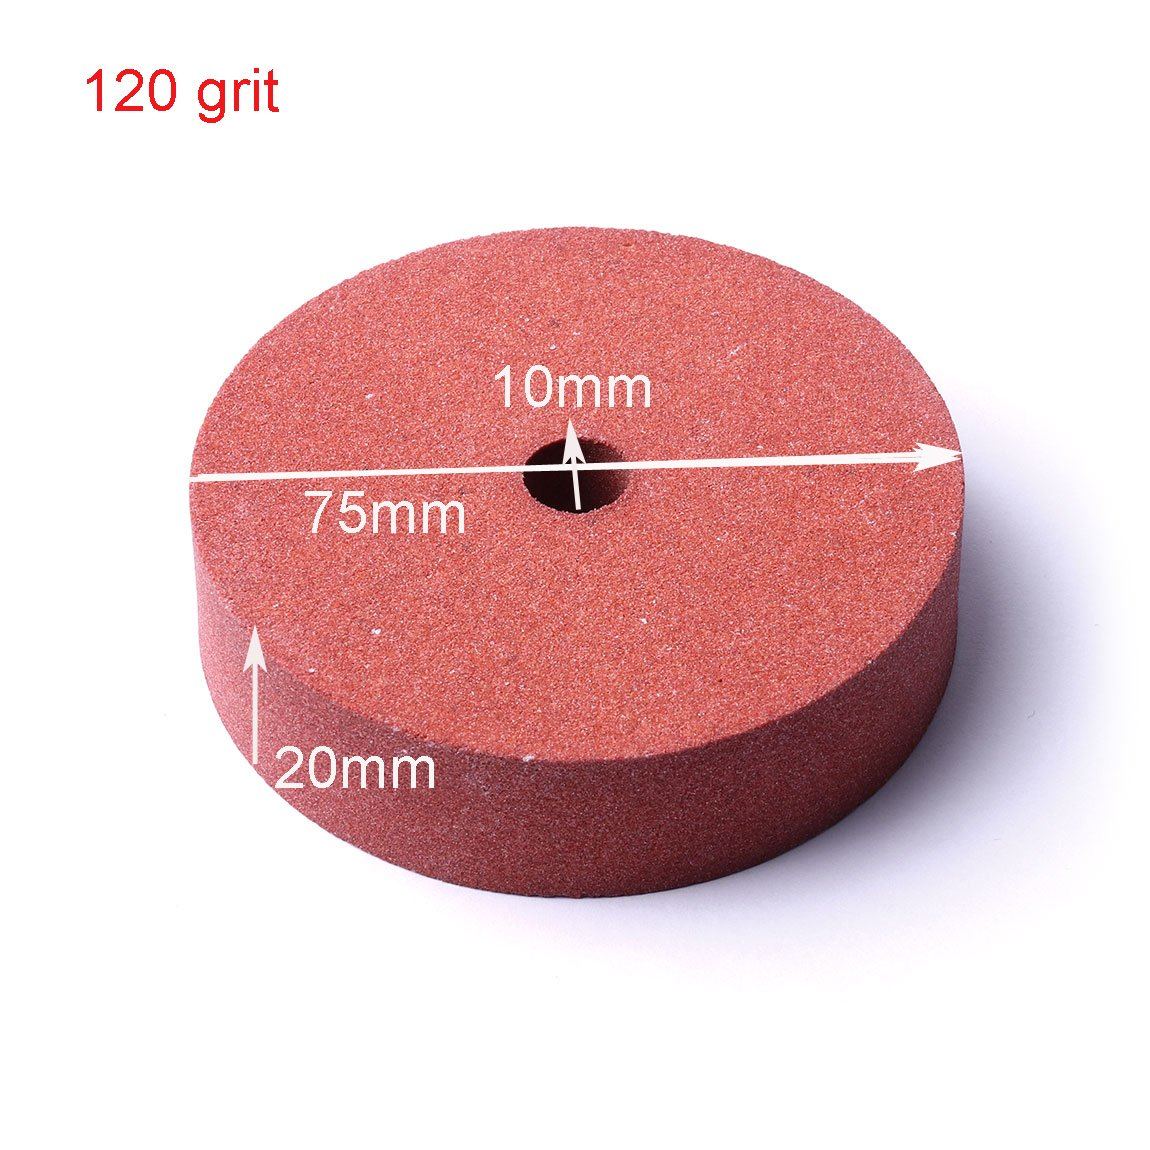 ATOPLEE 1pc 75mm Diameter Grit 120# Polishing Grinding Stone Wheel for Bench Grinders